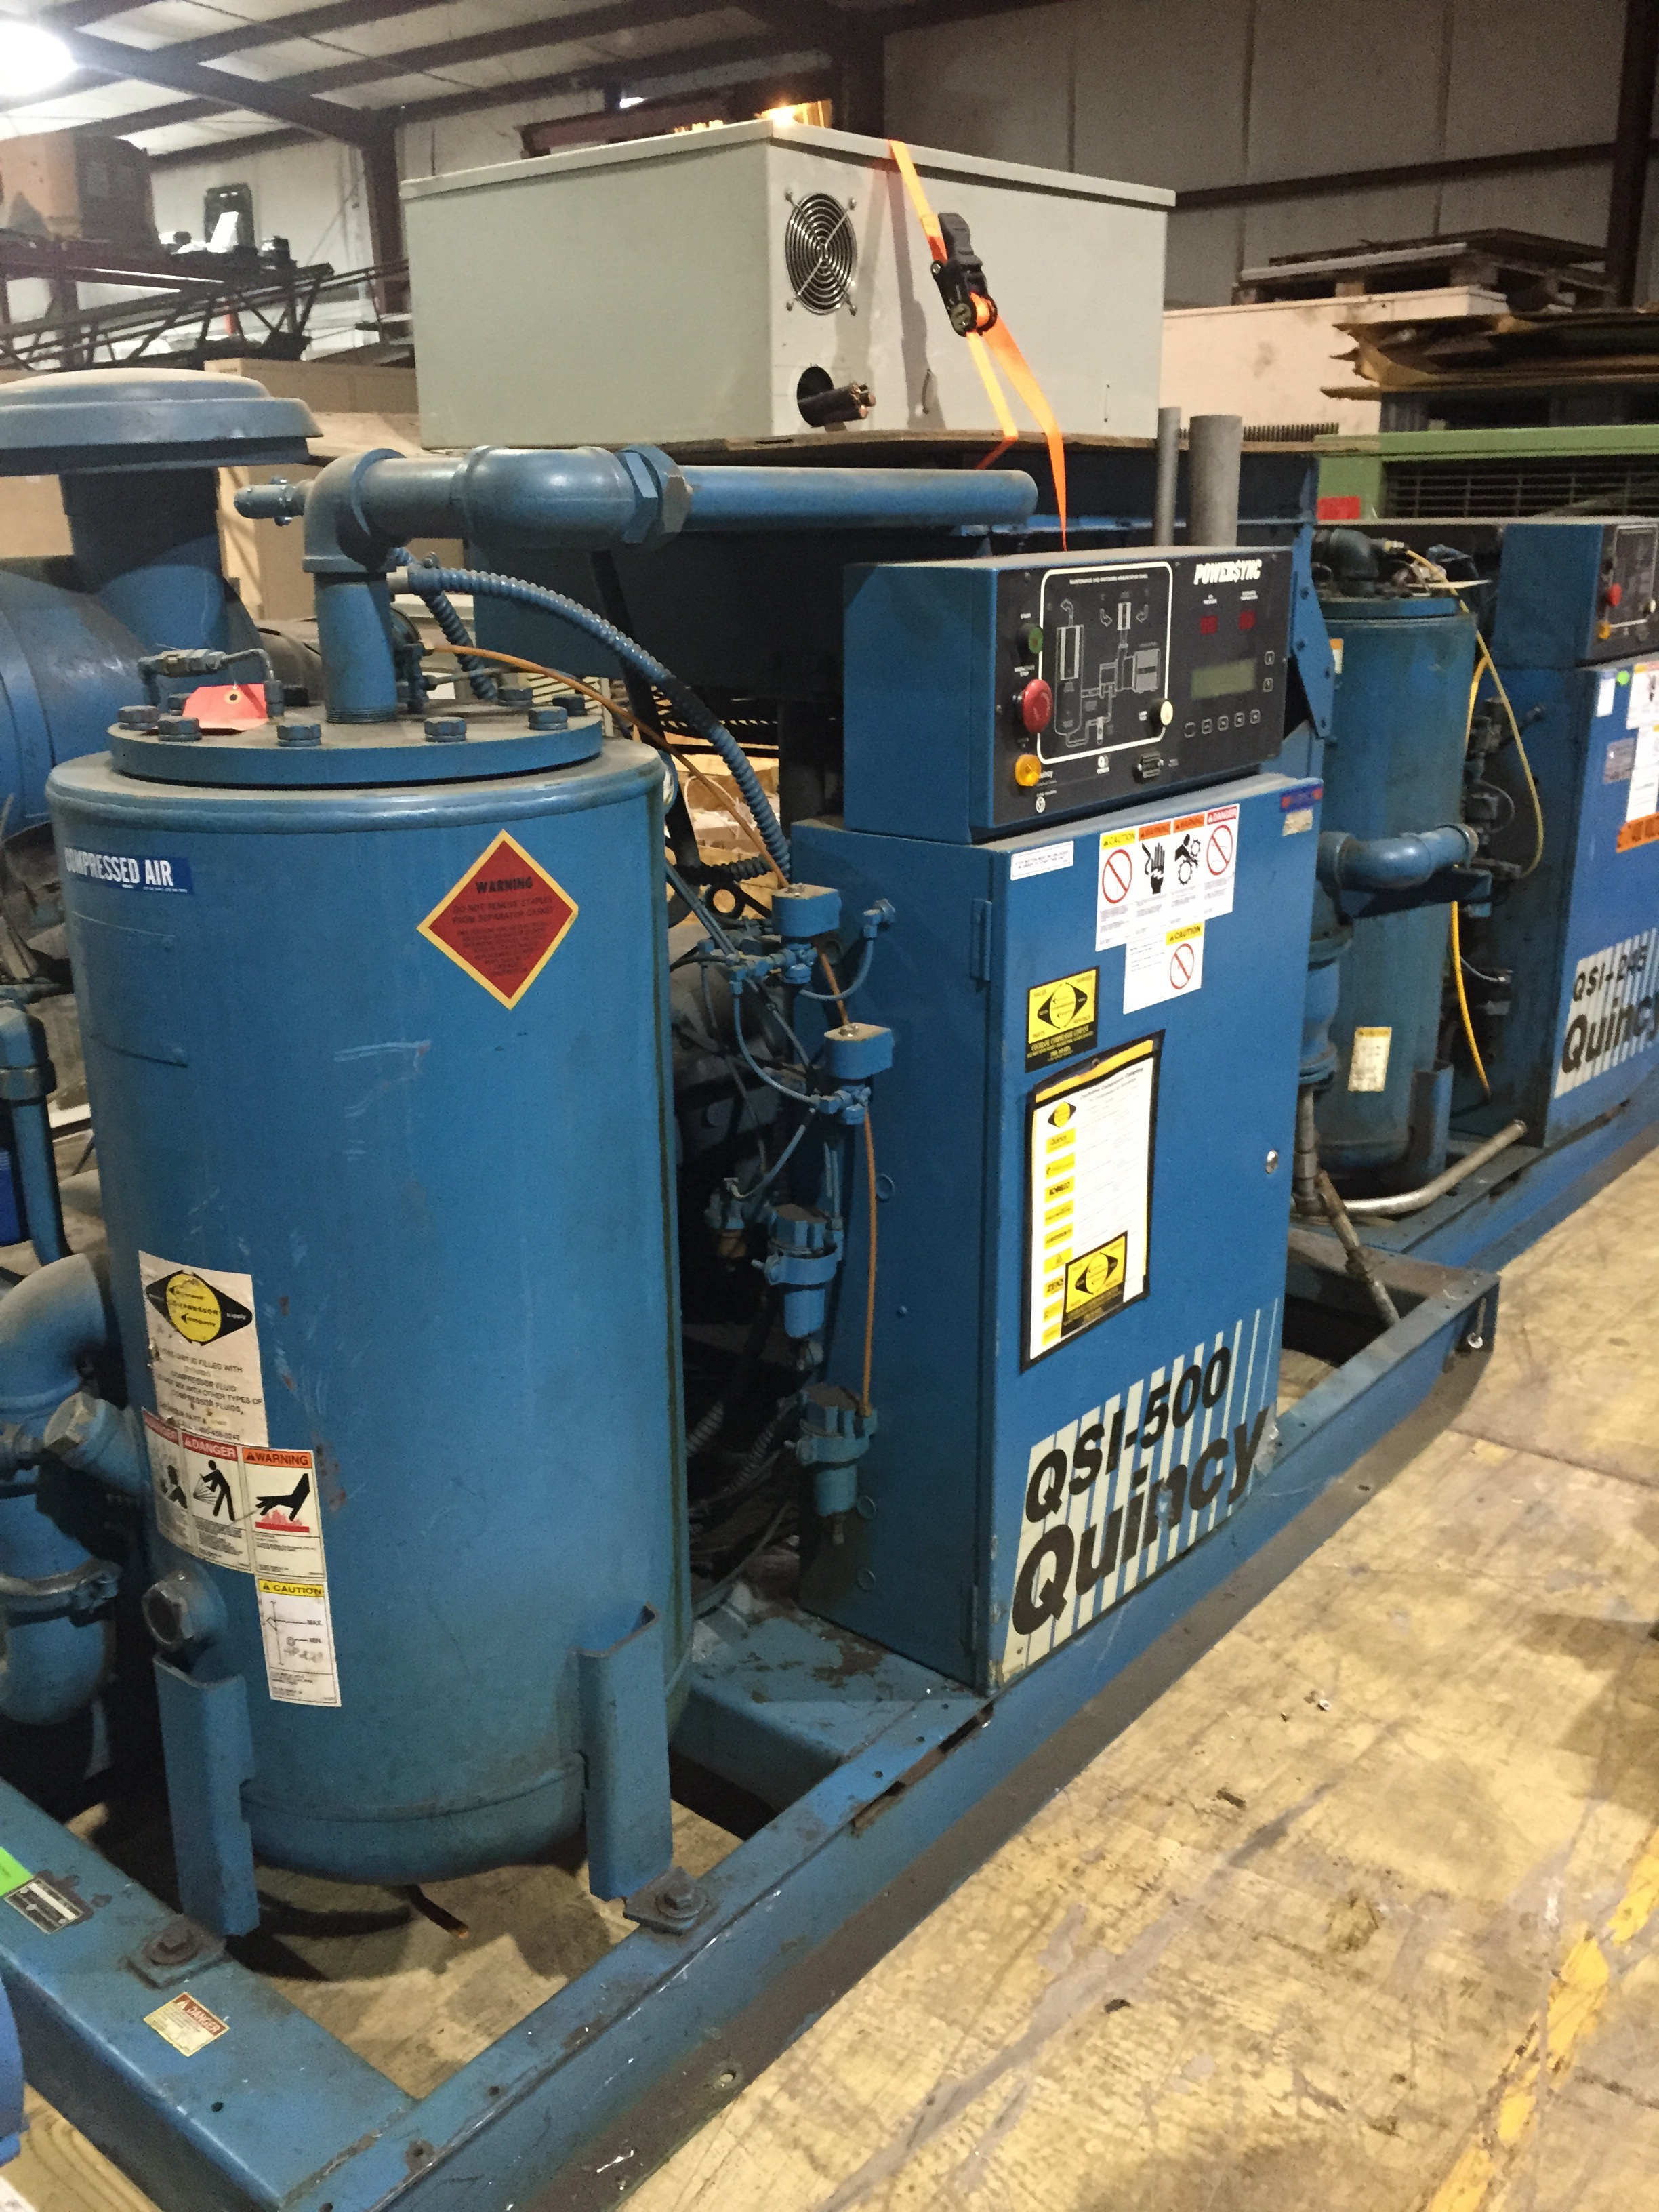 Quincy qsi 500 manual array quincy model qsi 500ana32ec low pressure air compressor rh internationalpack com fandeluxe Choice Image